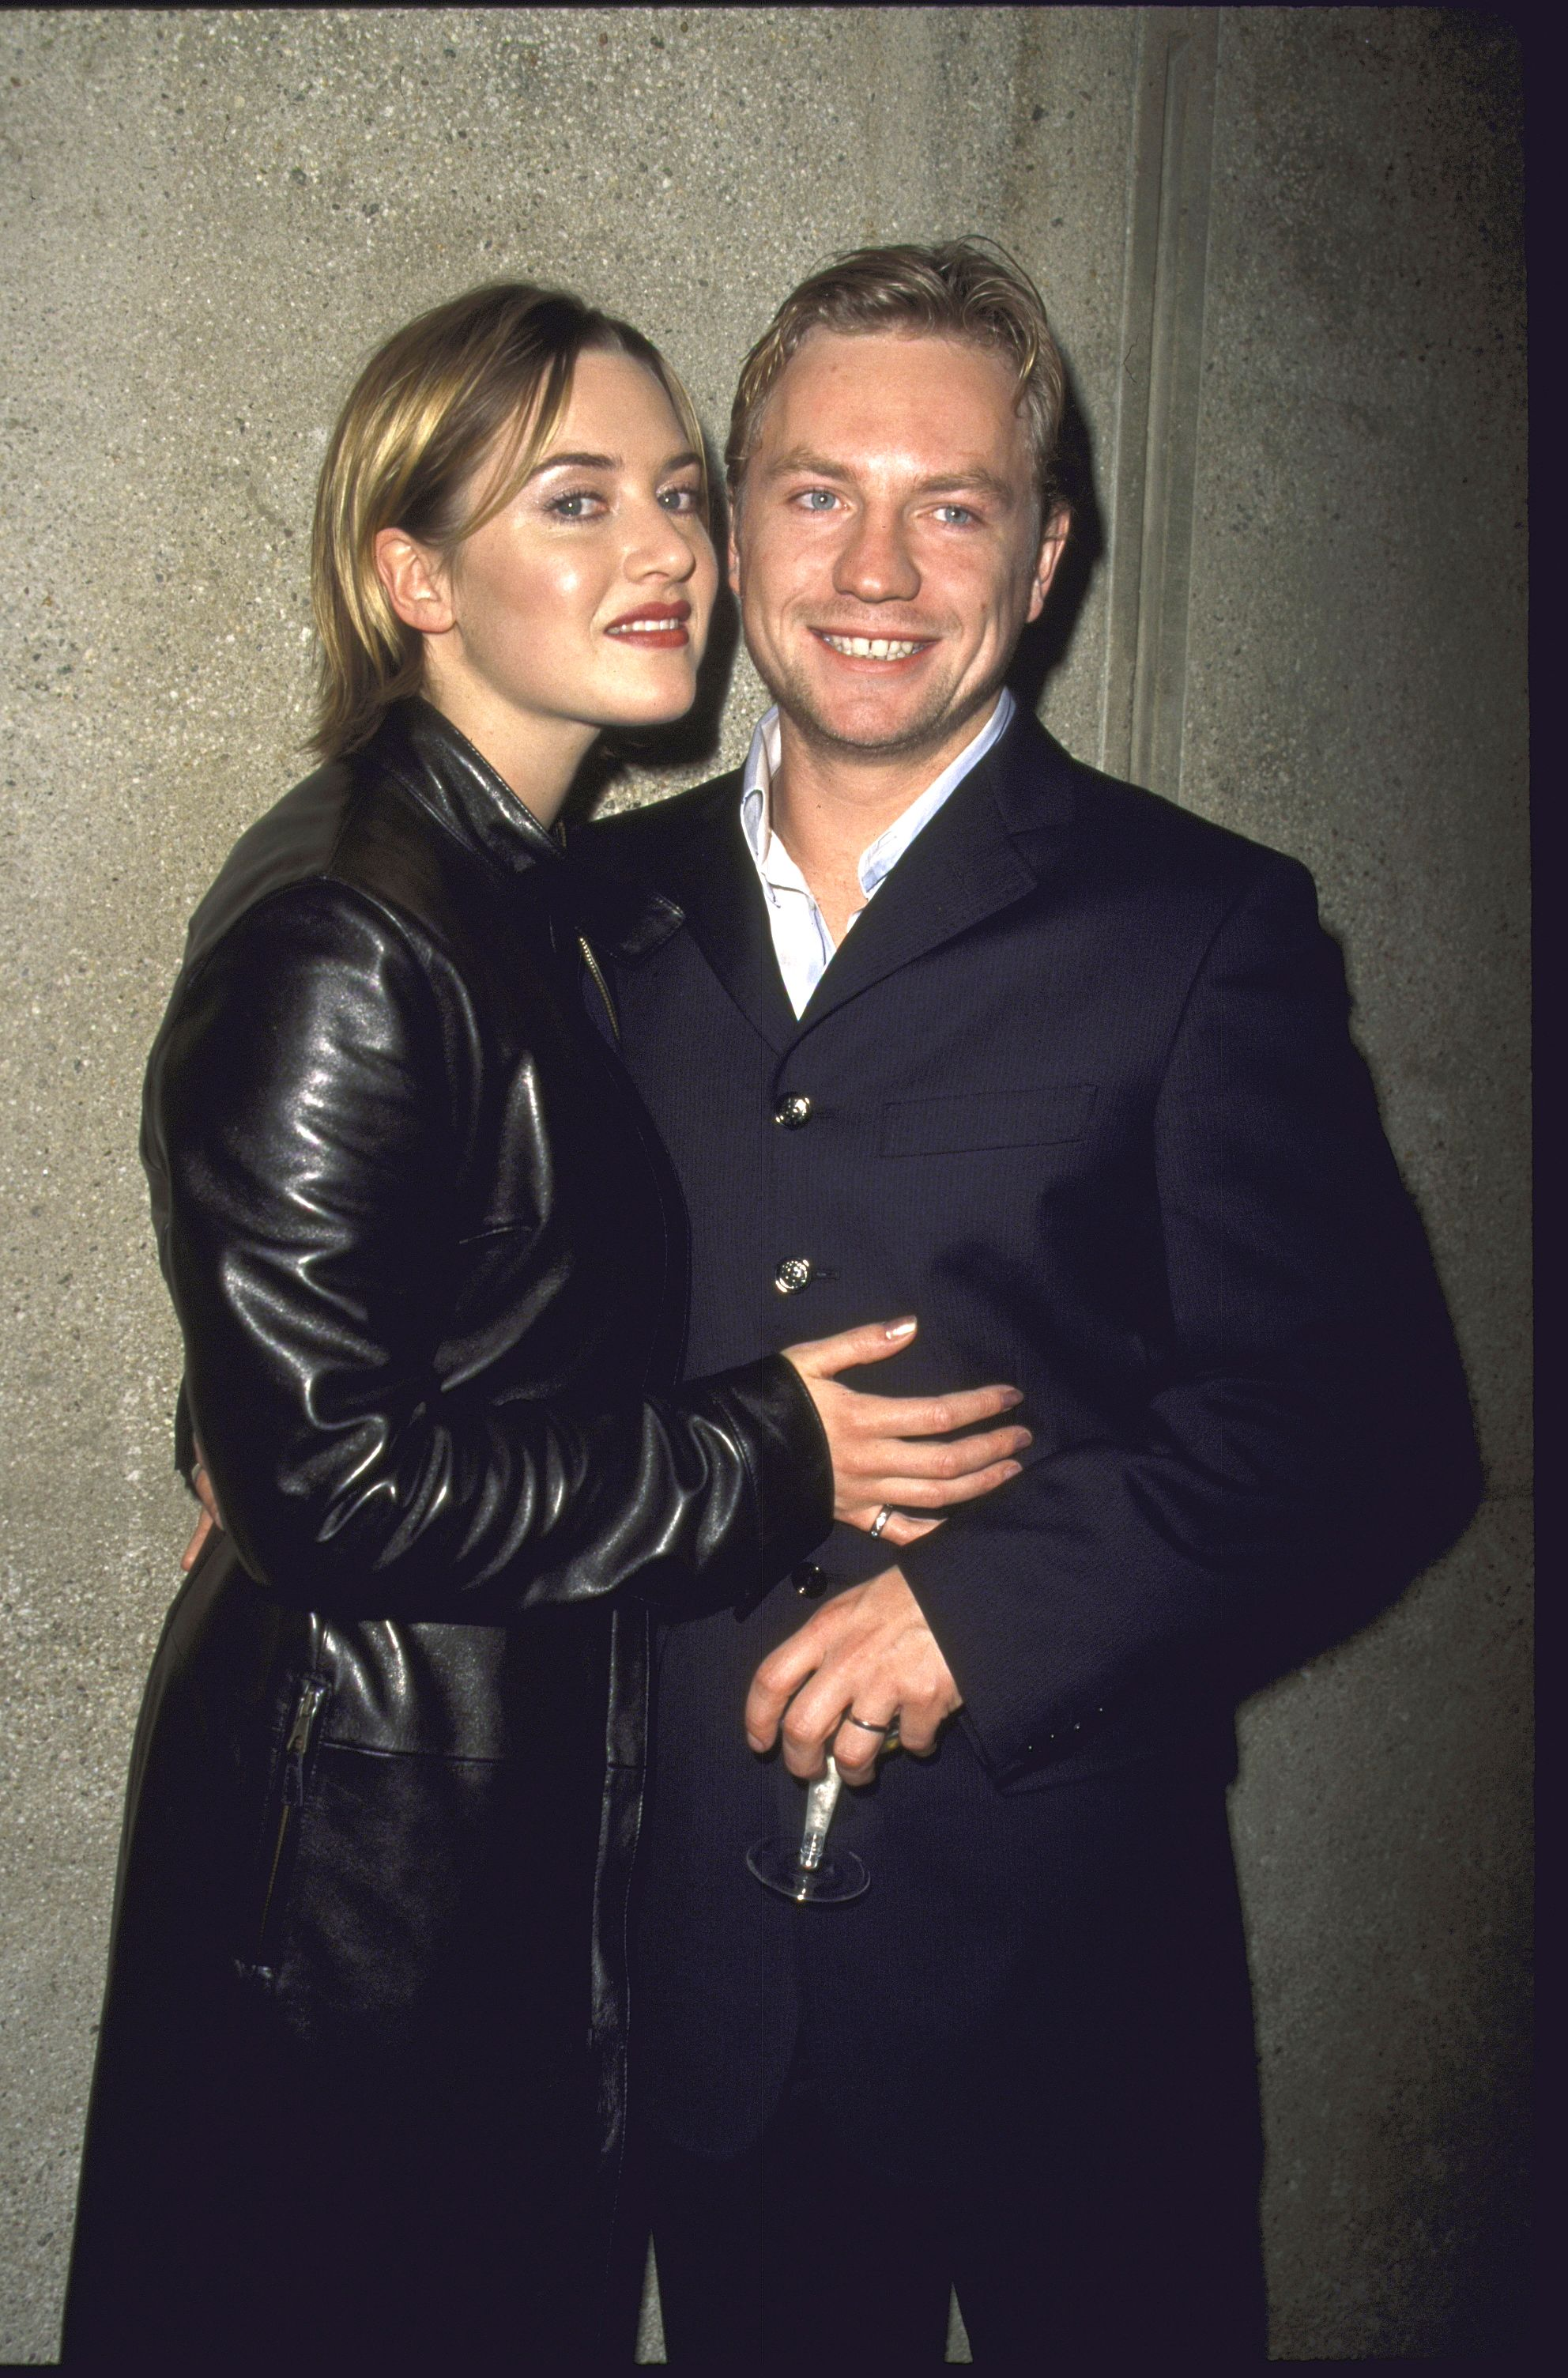 """Kate Winslet and director Jim Threapleton, at the film premiere """"Holy Smoke"""" in 1999 in New York   Source: Getty Images"""